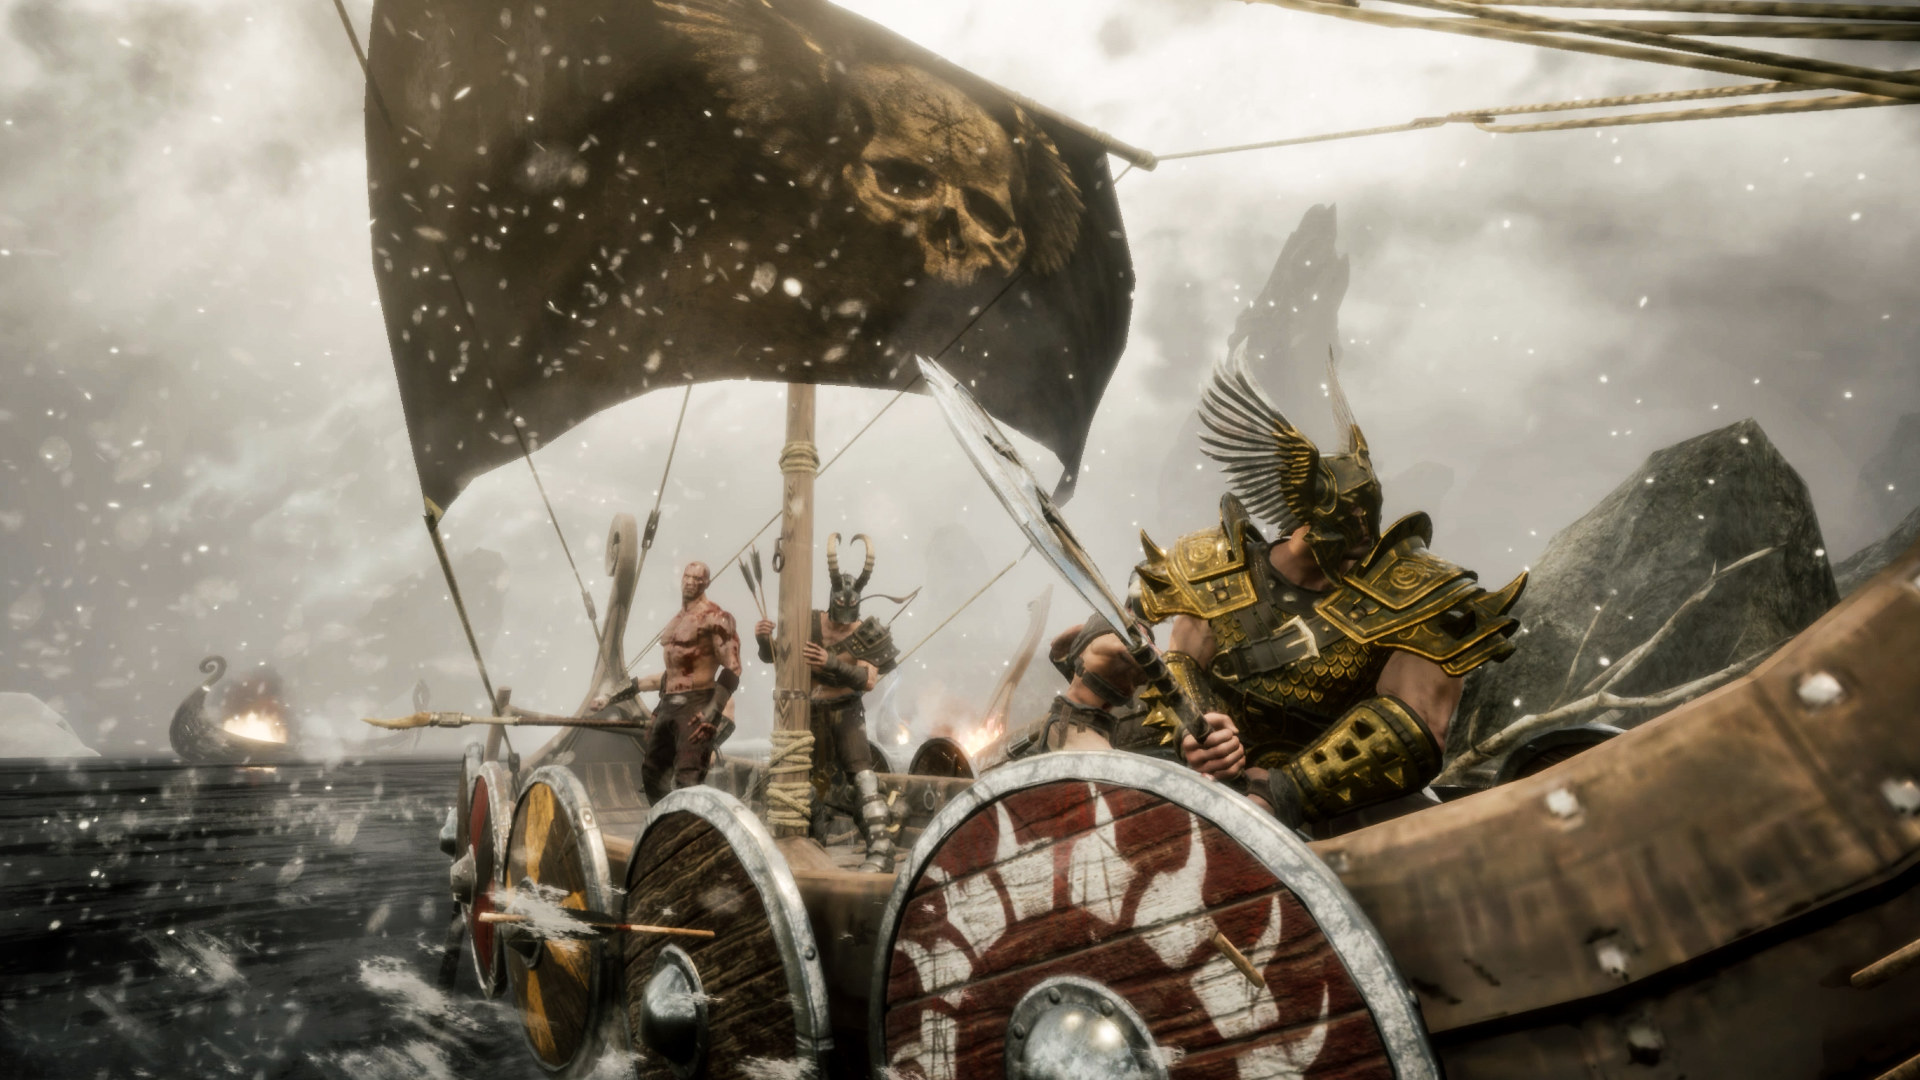 Vikings out sailing their boat in Rune II: Decapitation Edition.